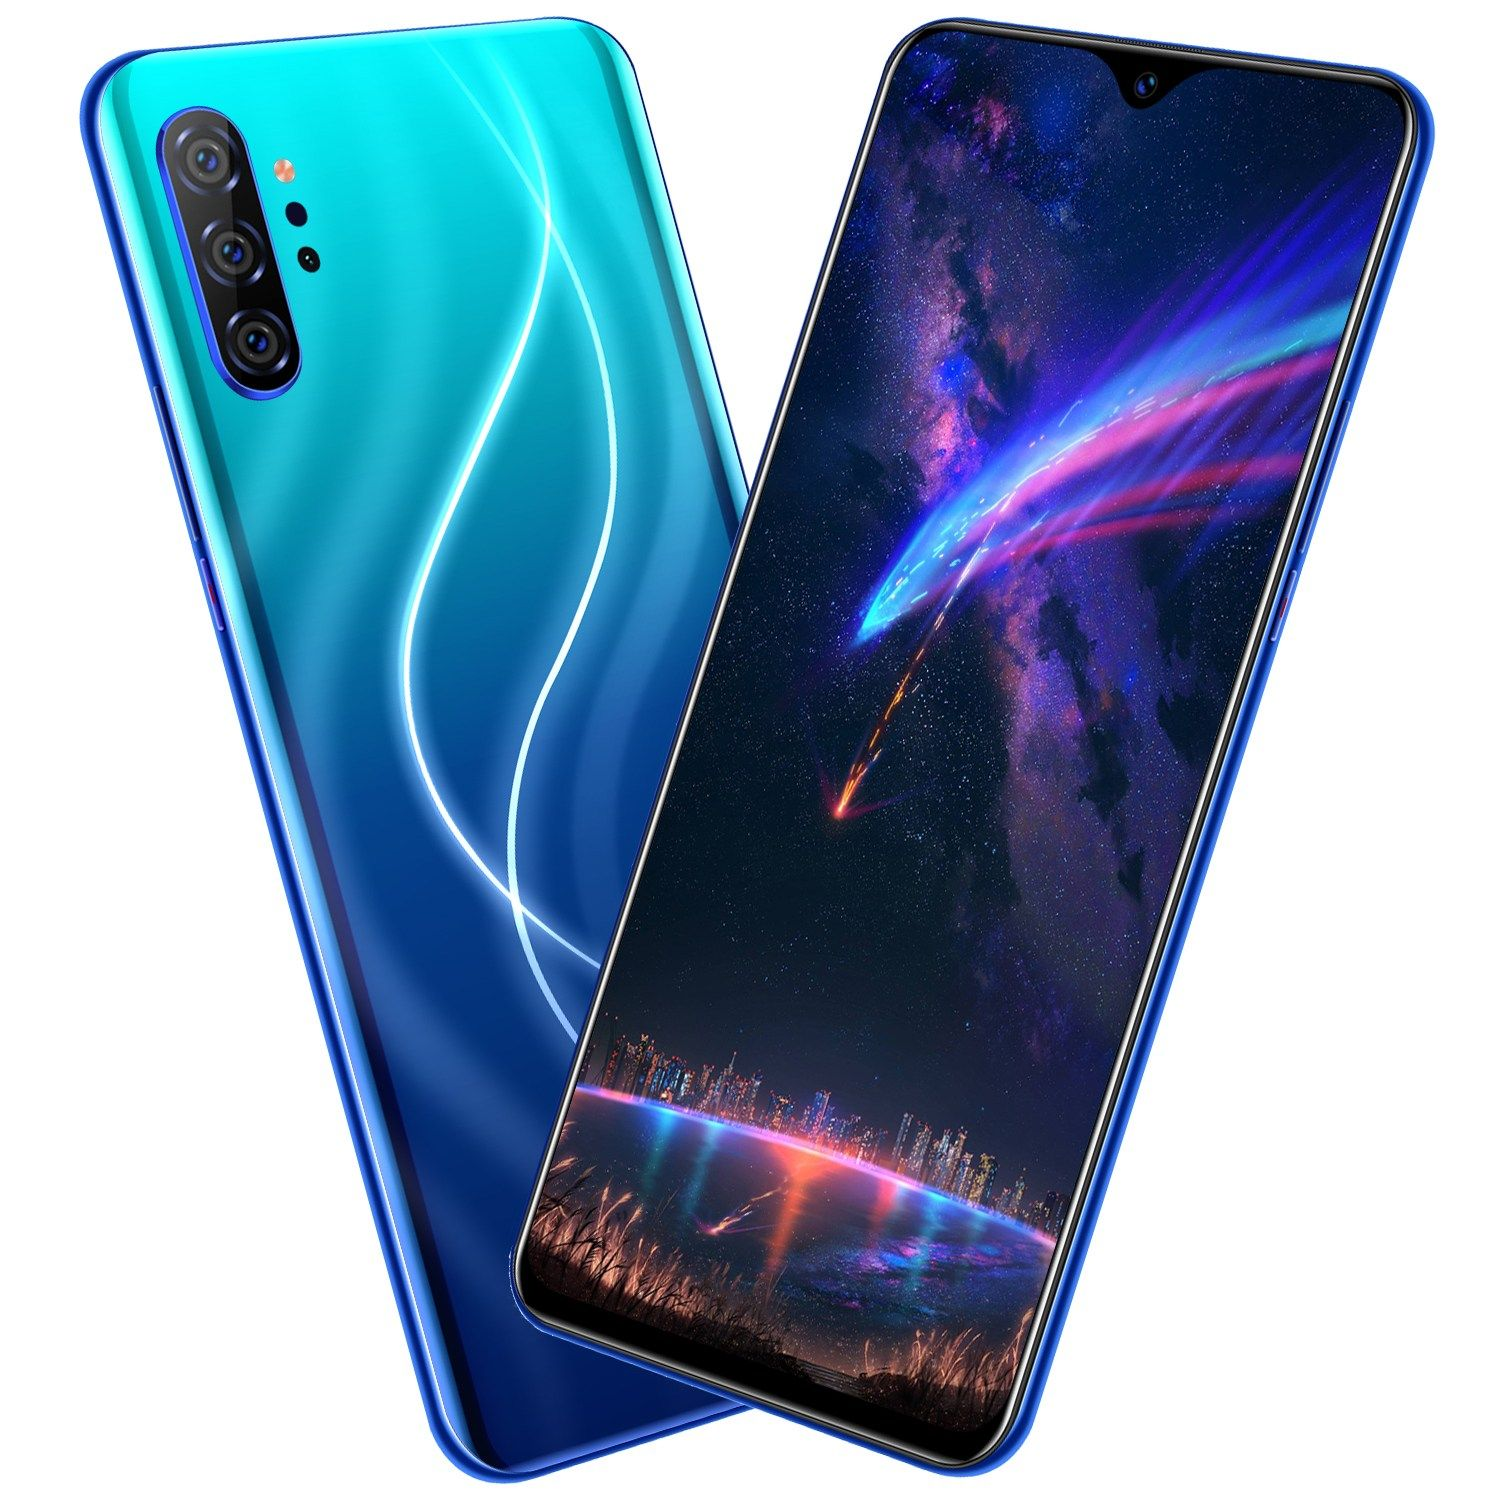 Doogee X95 Cellphones 6 52 Mtk6737 16gb Rom Dual Sim 13mp Triple Camera 4350mah Smartphones Mobile Phone Android 10 Os 4g Lte Online Shop Discount Of All Pro In 2020 Smartphone Smartphone Hacks